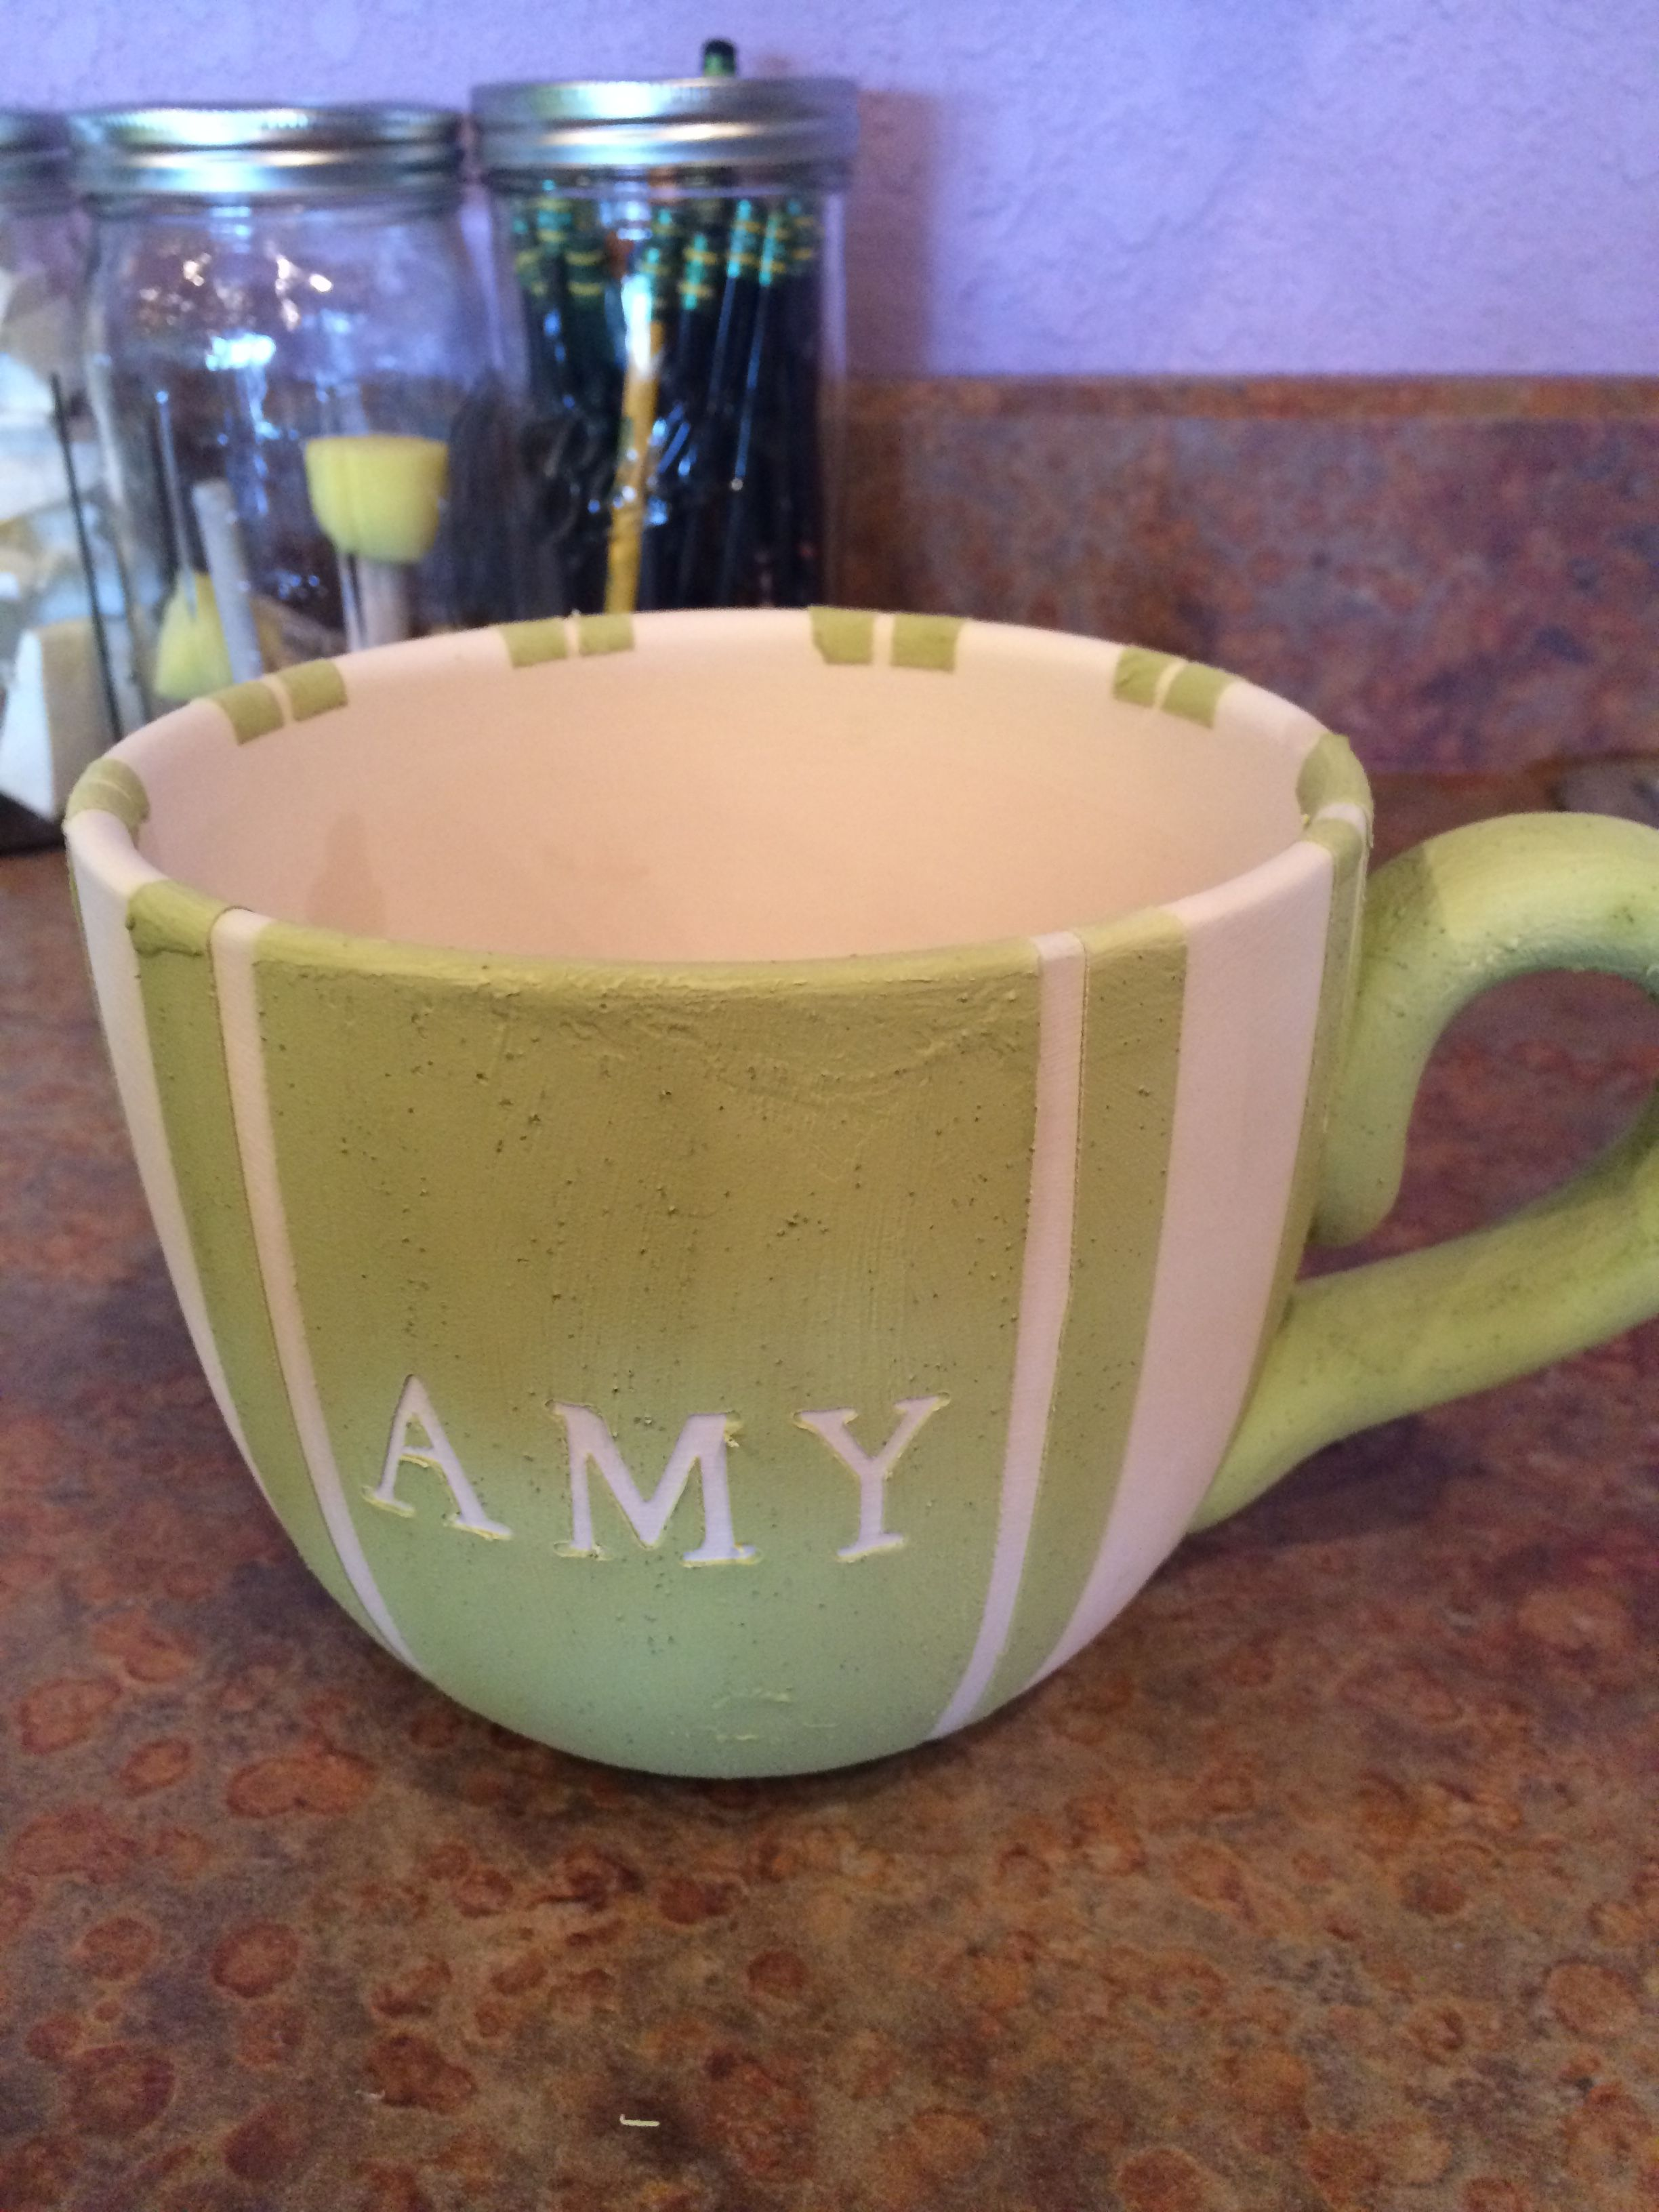 Coffee Mug Ceramic Pottery Paint Your Own Design Personalize Gift Giveaways Decor Collection Kitchen Pottery Ceramic Mugs Mugs